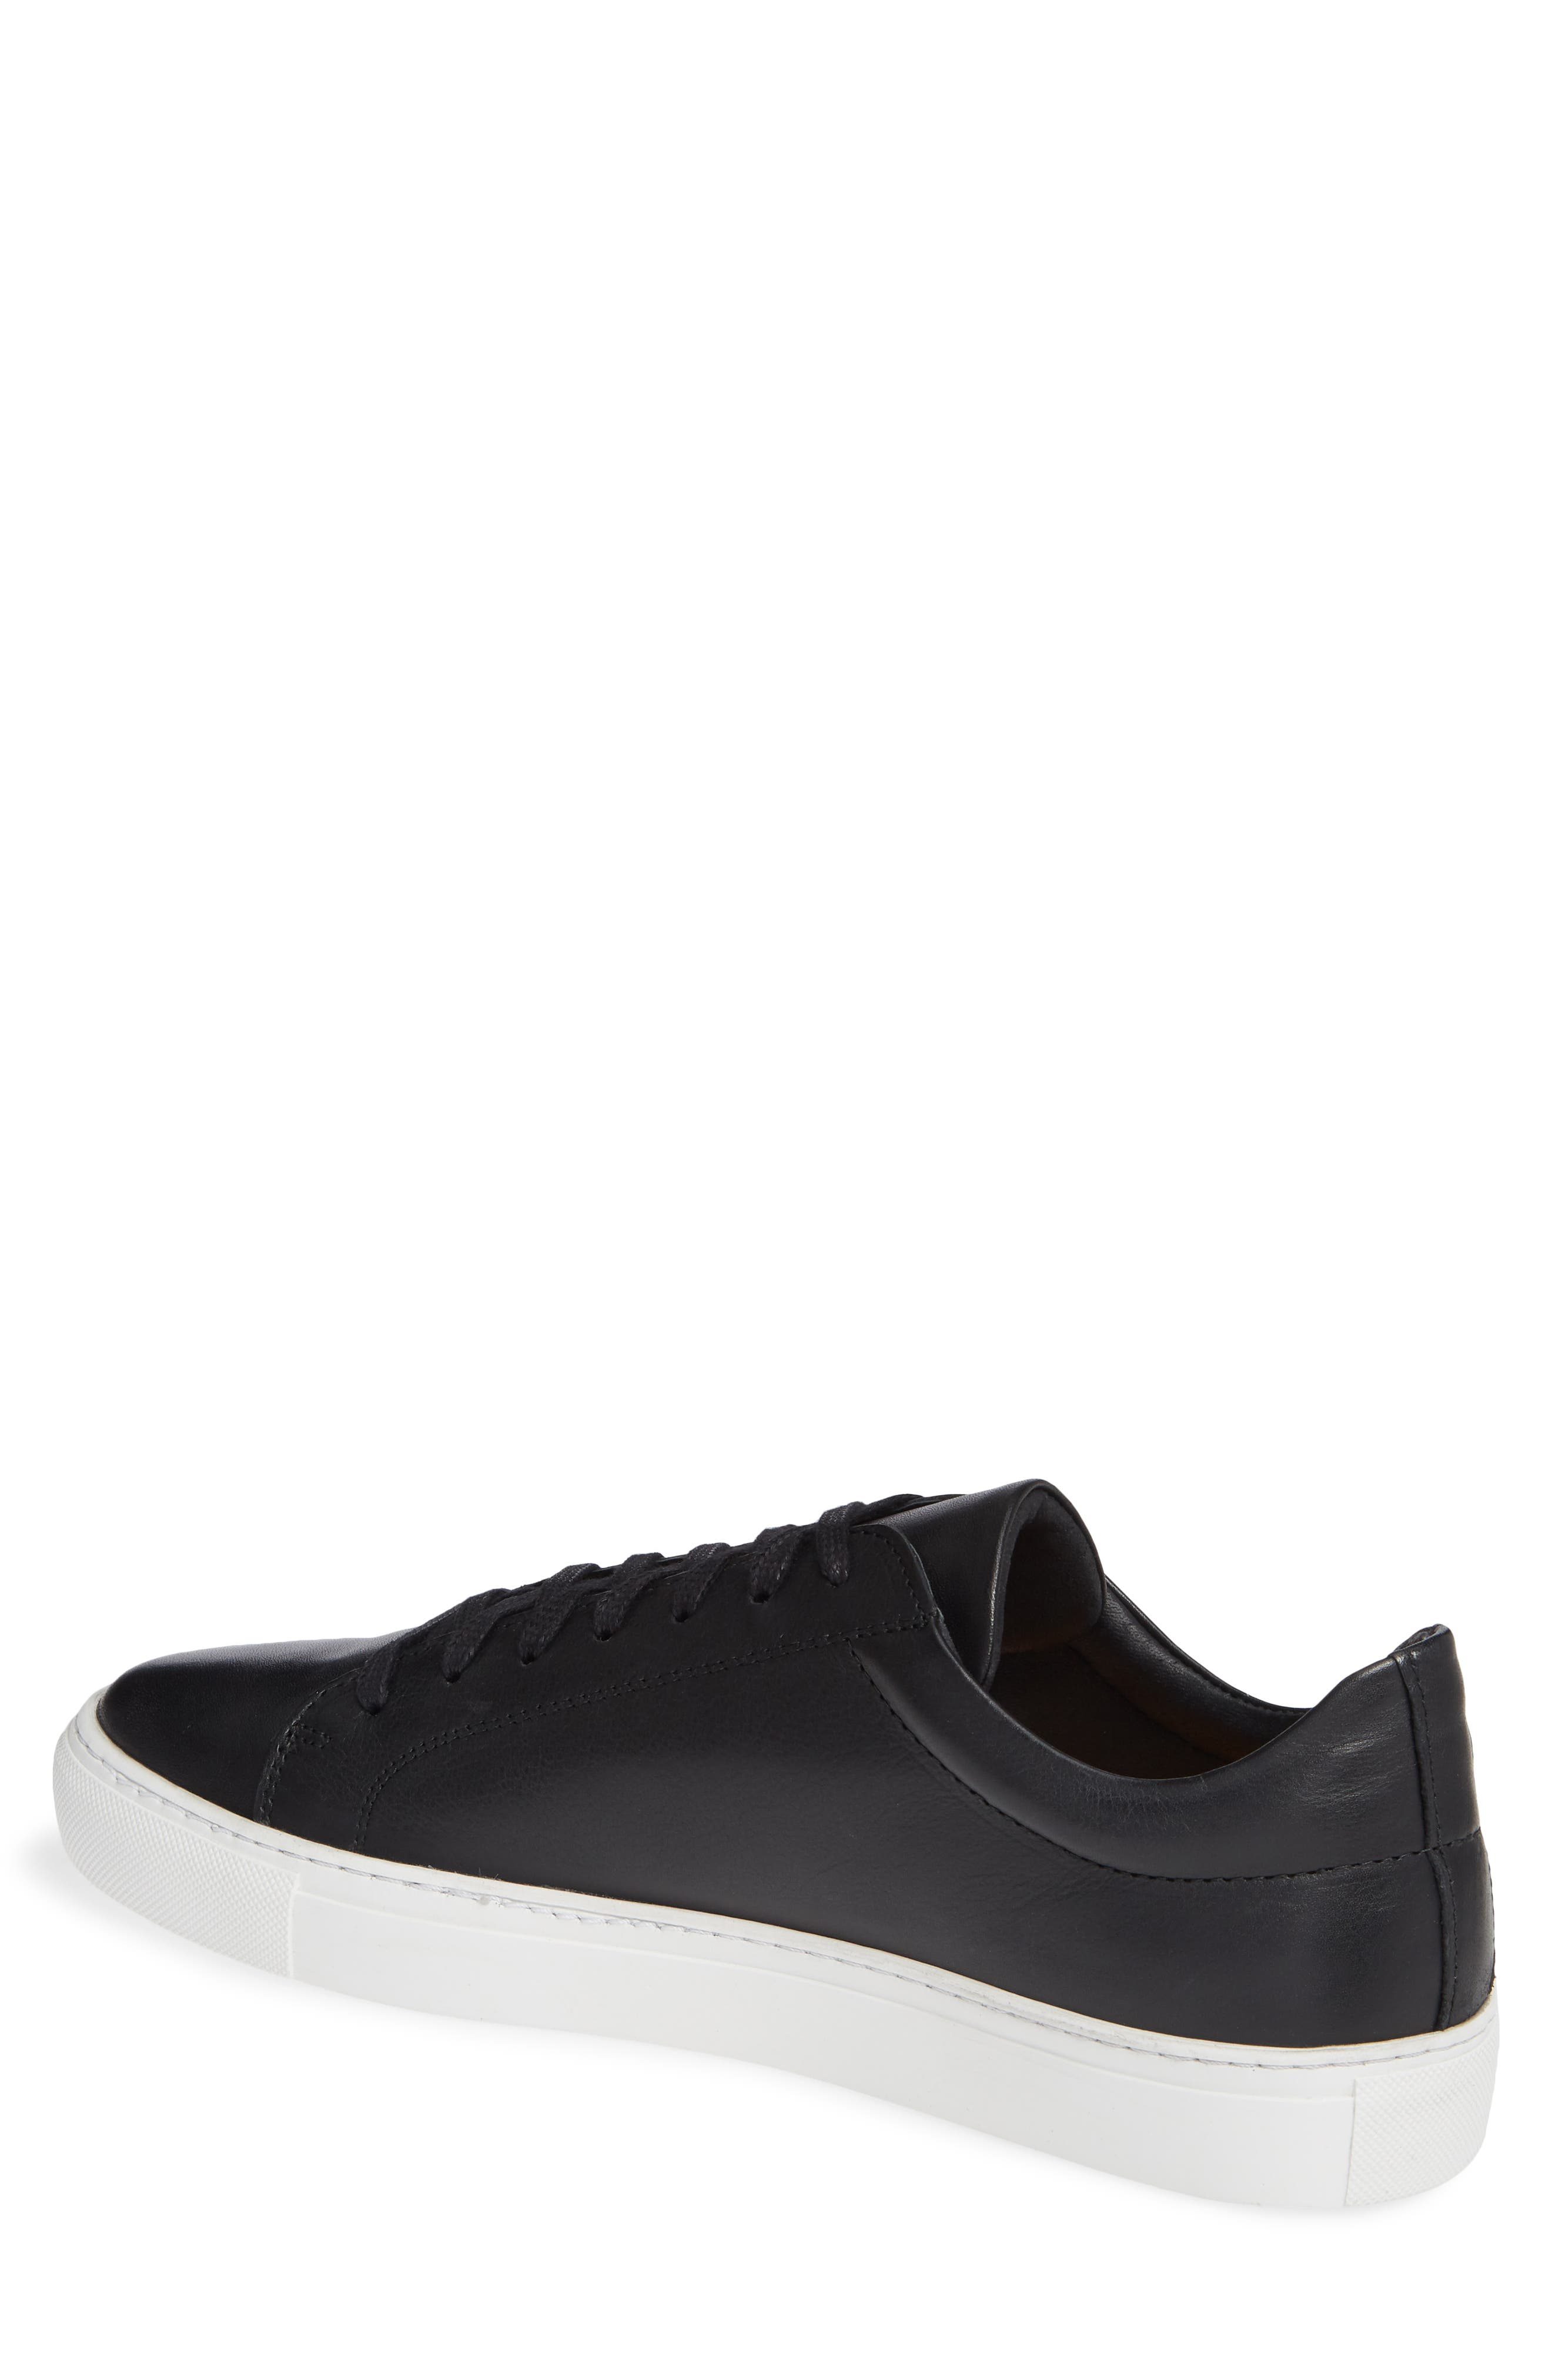 Damian Lace-Up Sneaker,                             Alternate thumbnail 2, color,                             001